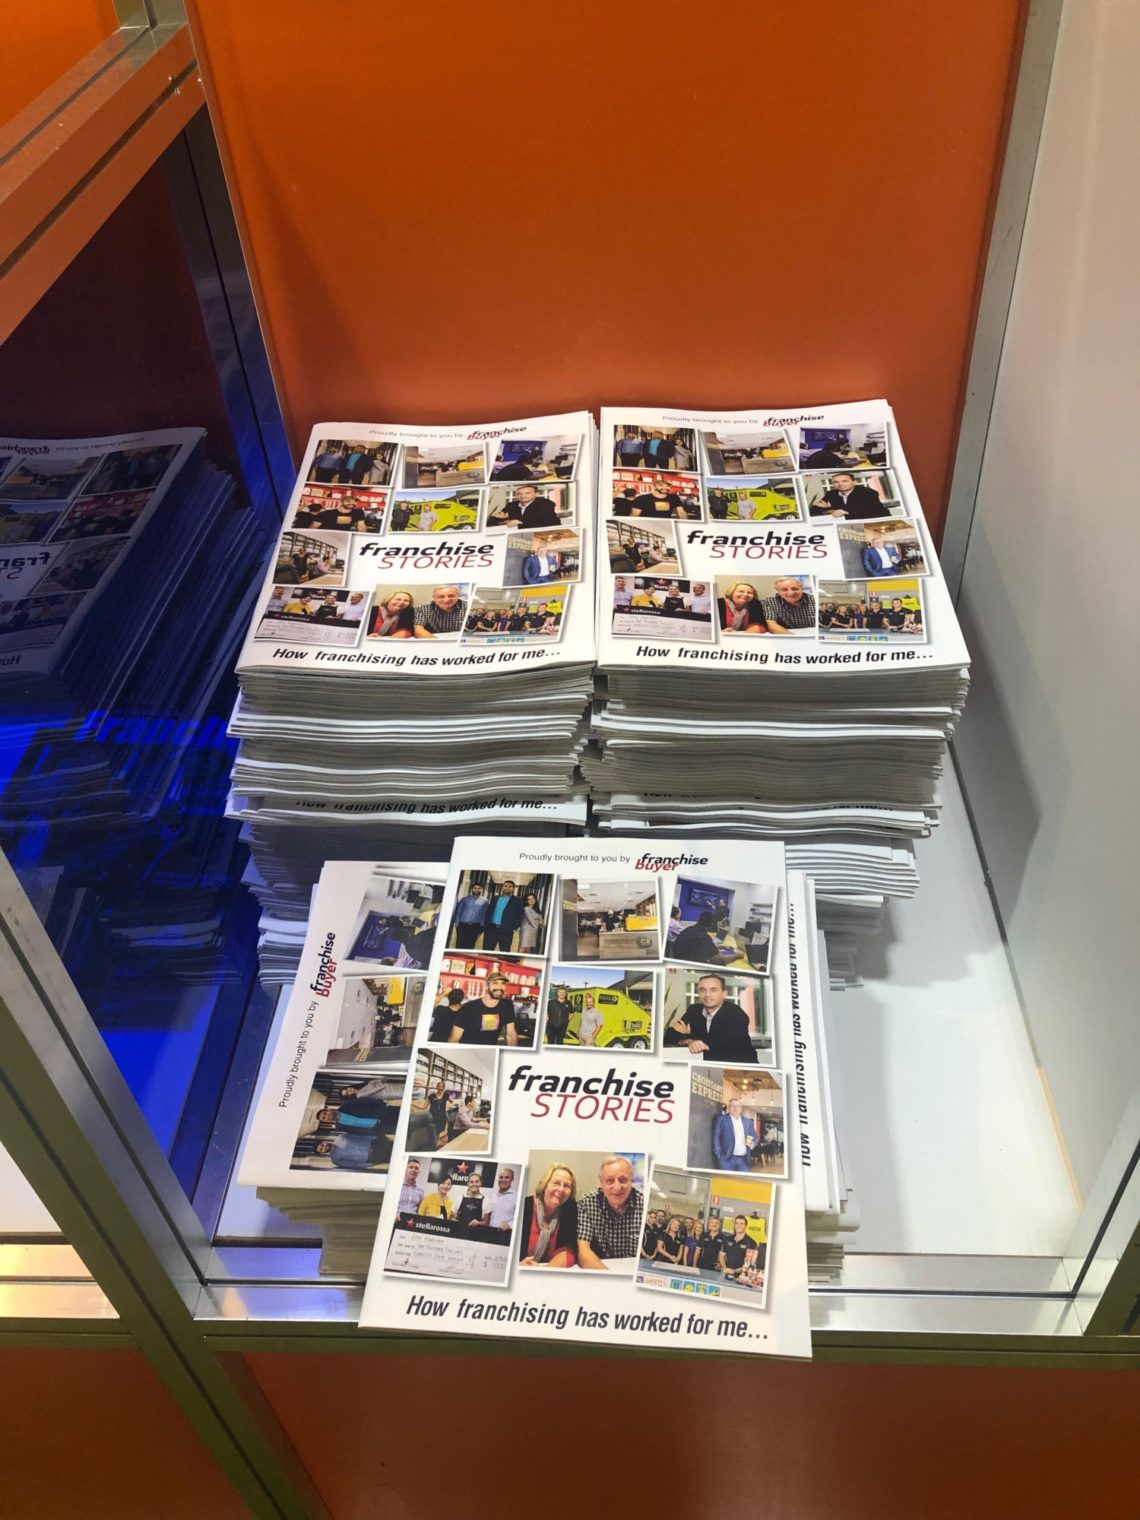 Franchise Stories Publication Sydney Expo Booth 2019 3